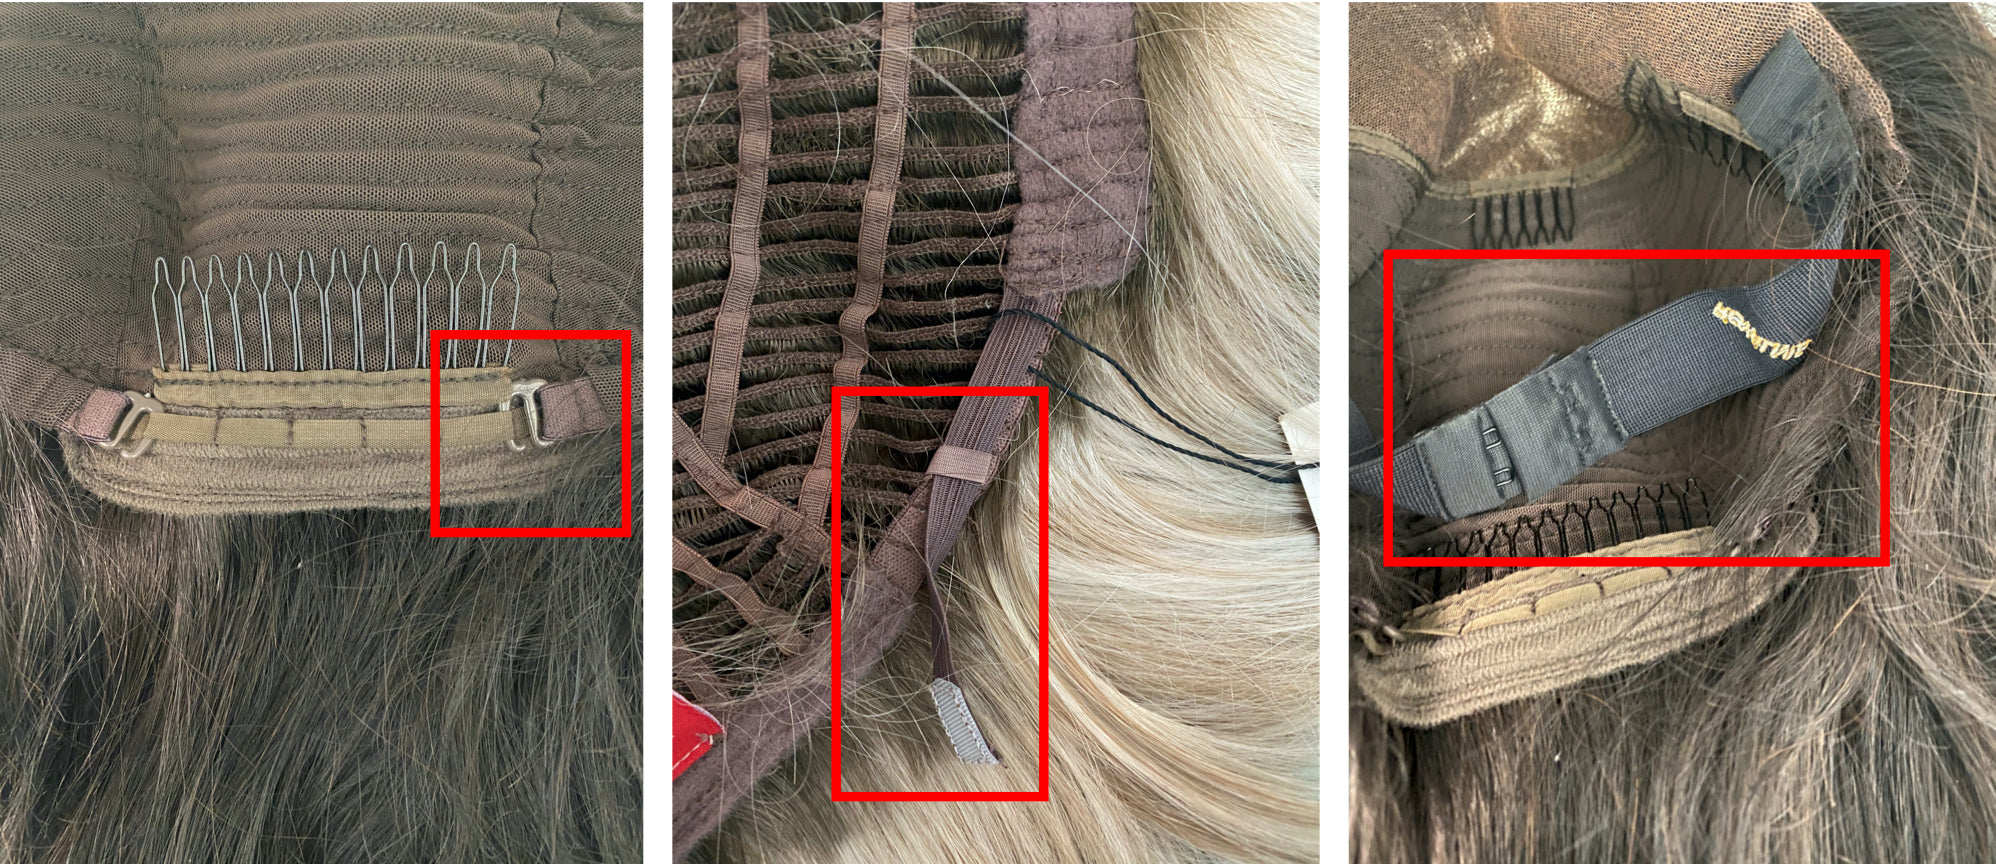 wig straps for adjusting good fit and sizing